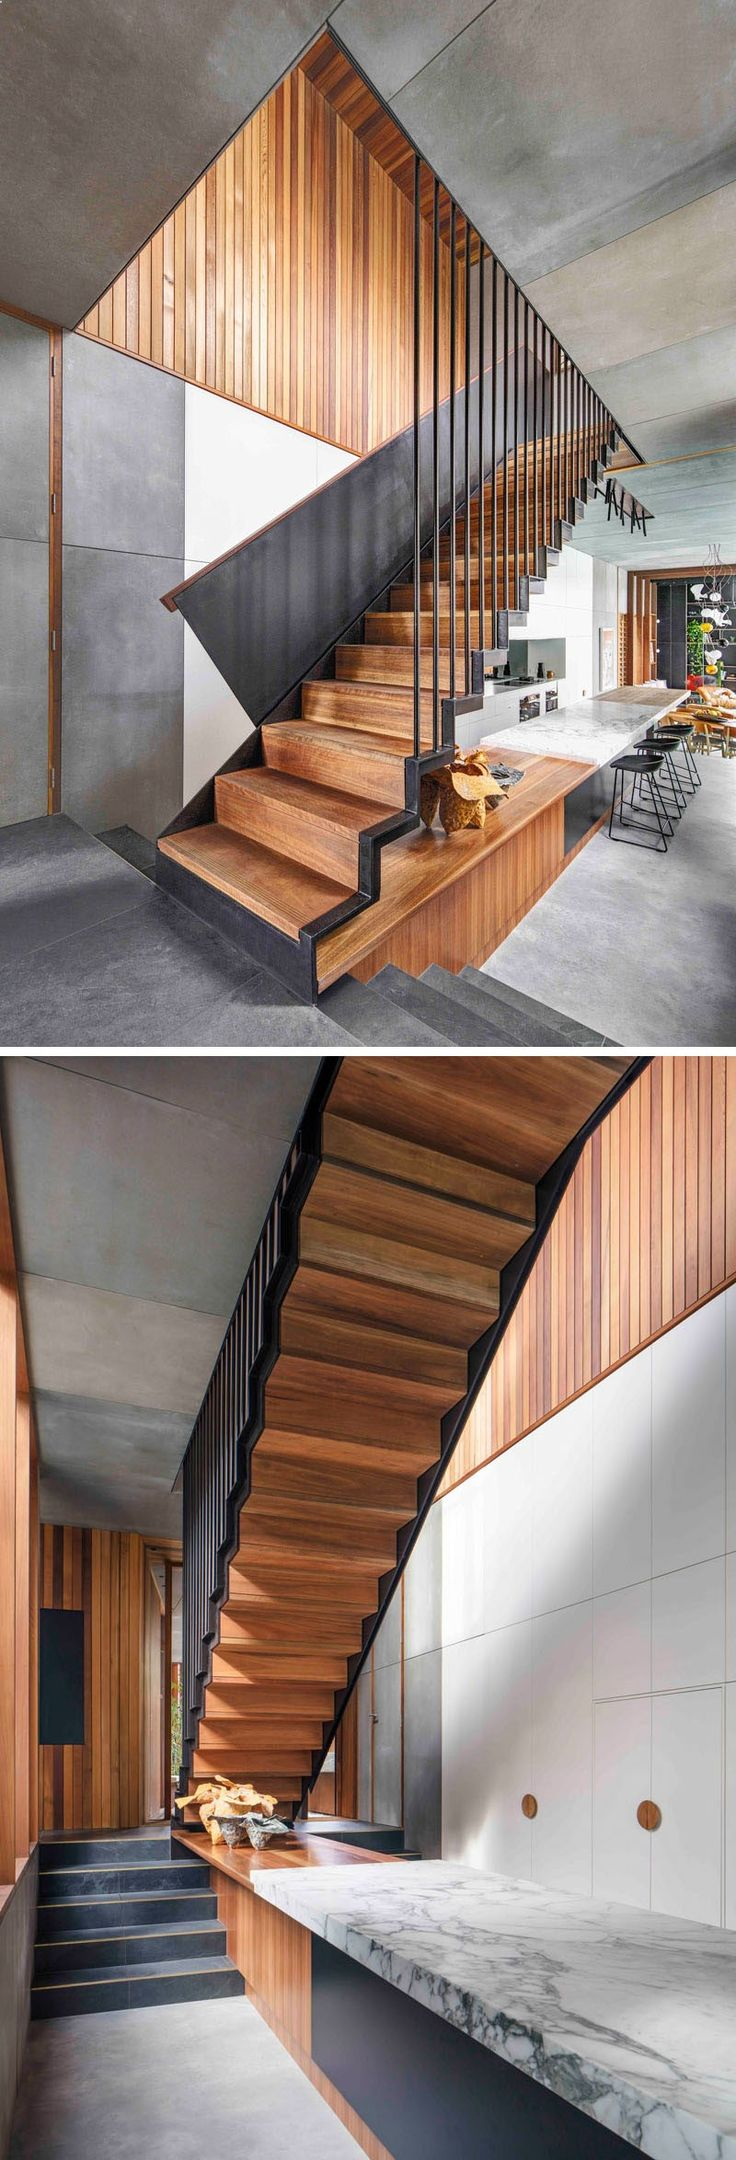 This modern house has wood and steel stairs that lead to the upper floor of the home.http://www.contemporist.com/house-surrounded-with-screens/